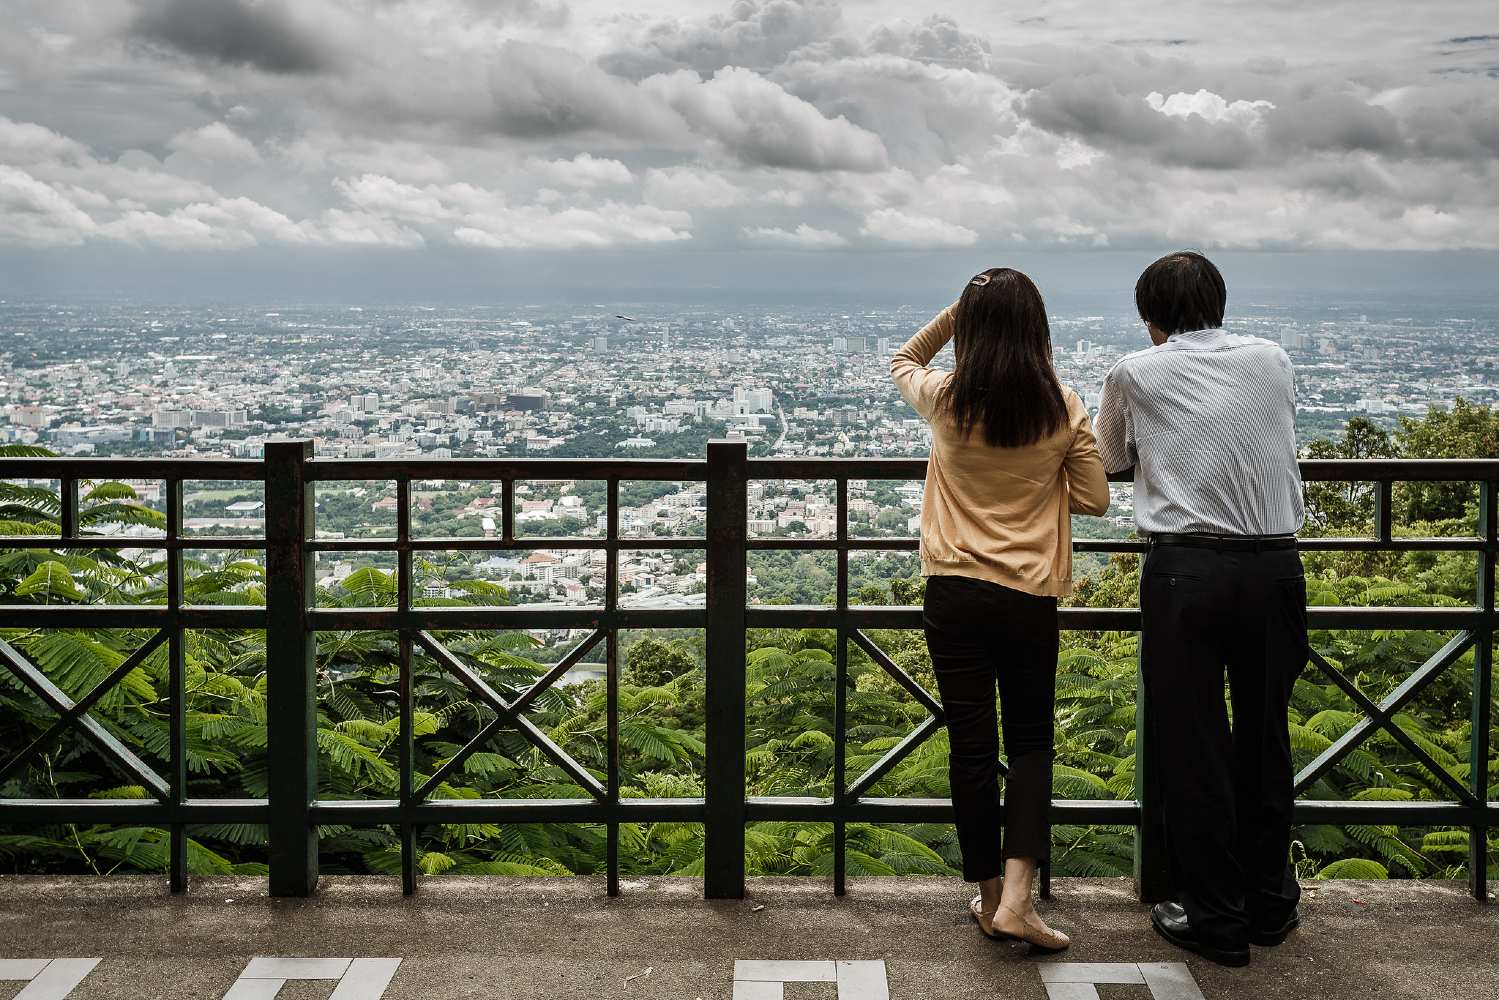 View from the Wat Phrathat Doi Suthep on the city of Chiang Mai in Thailand